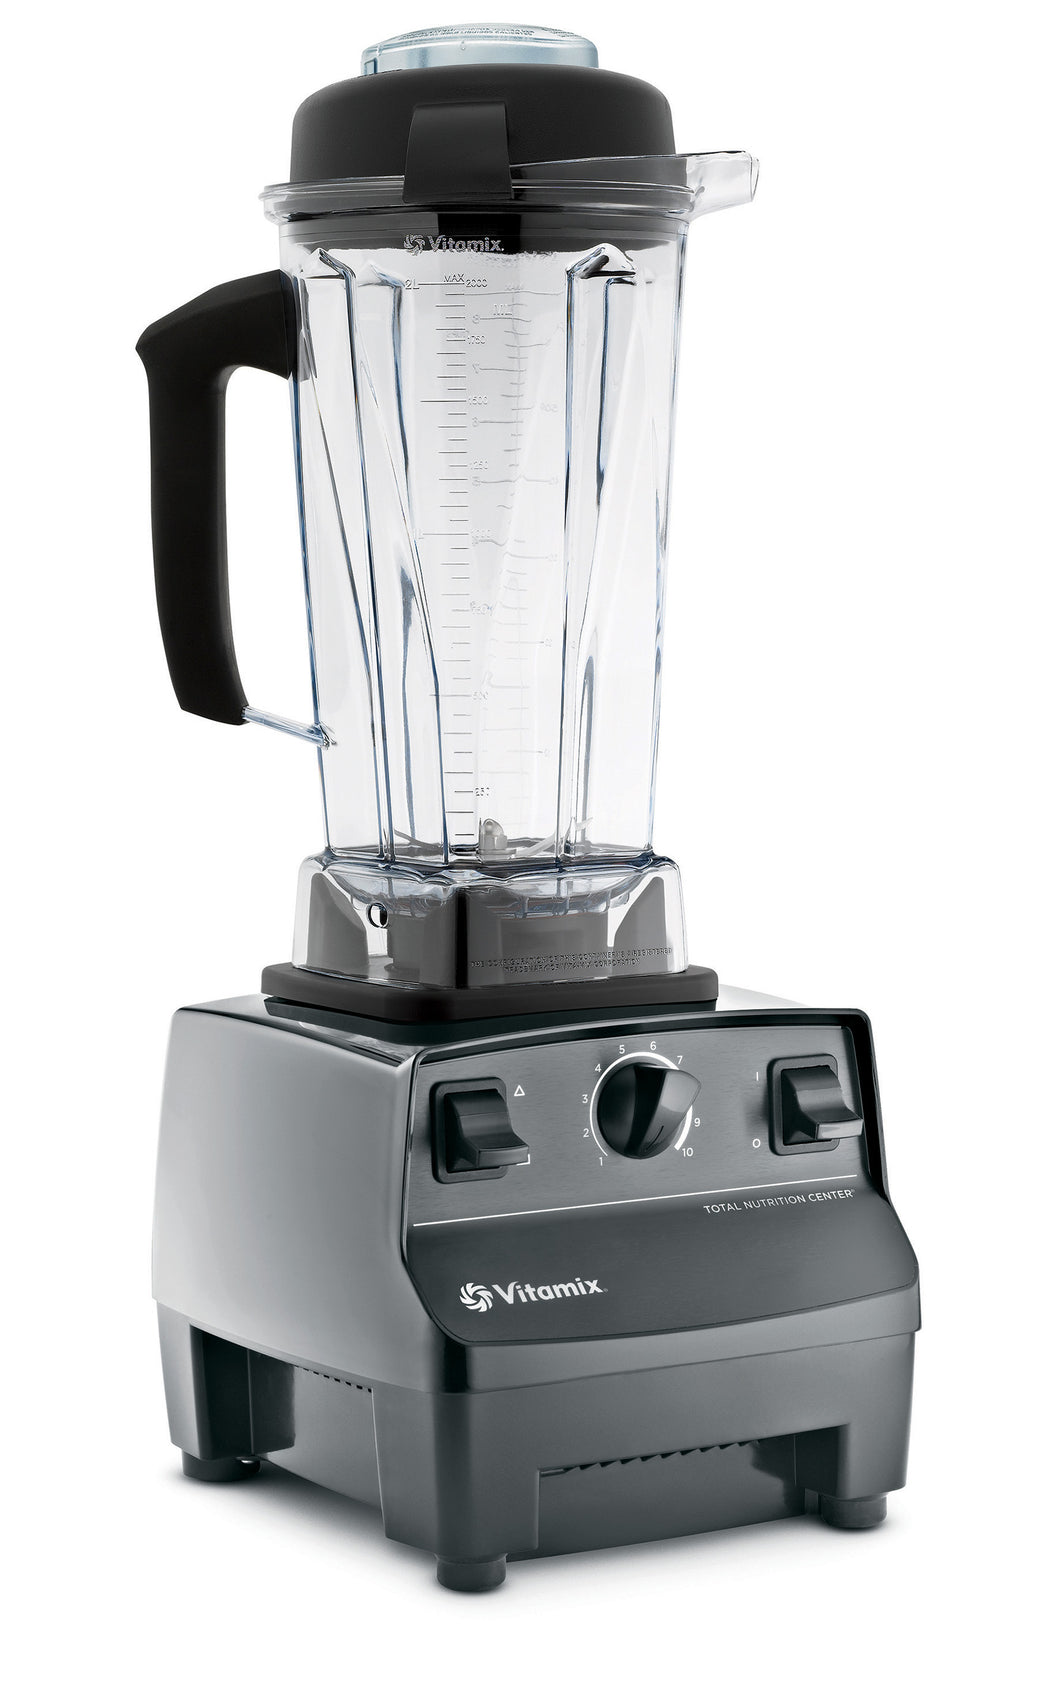 Vitamix Total Nutrition Center 5200 in Black